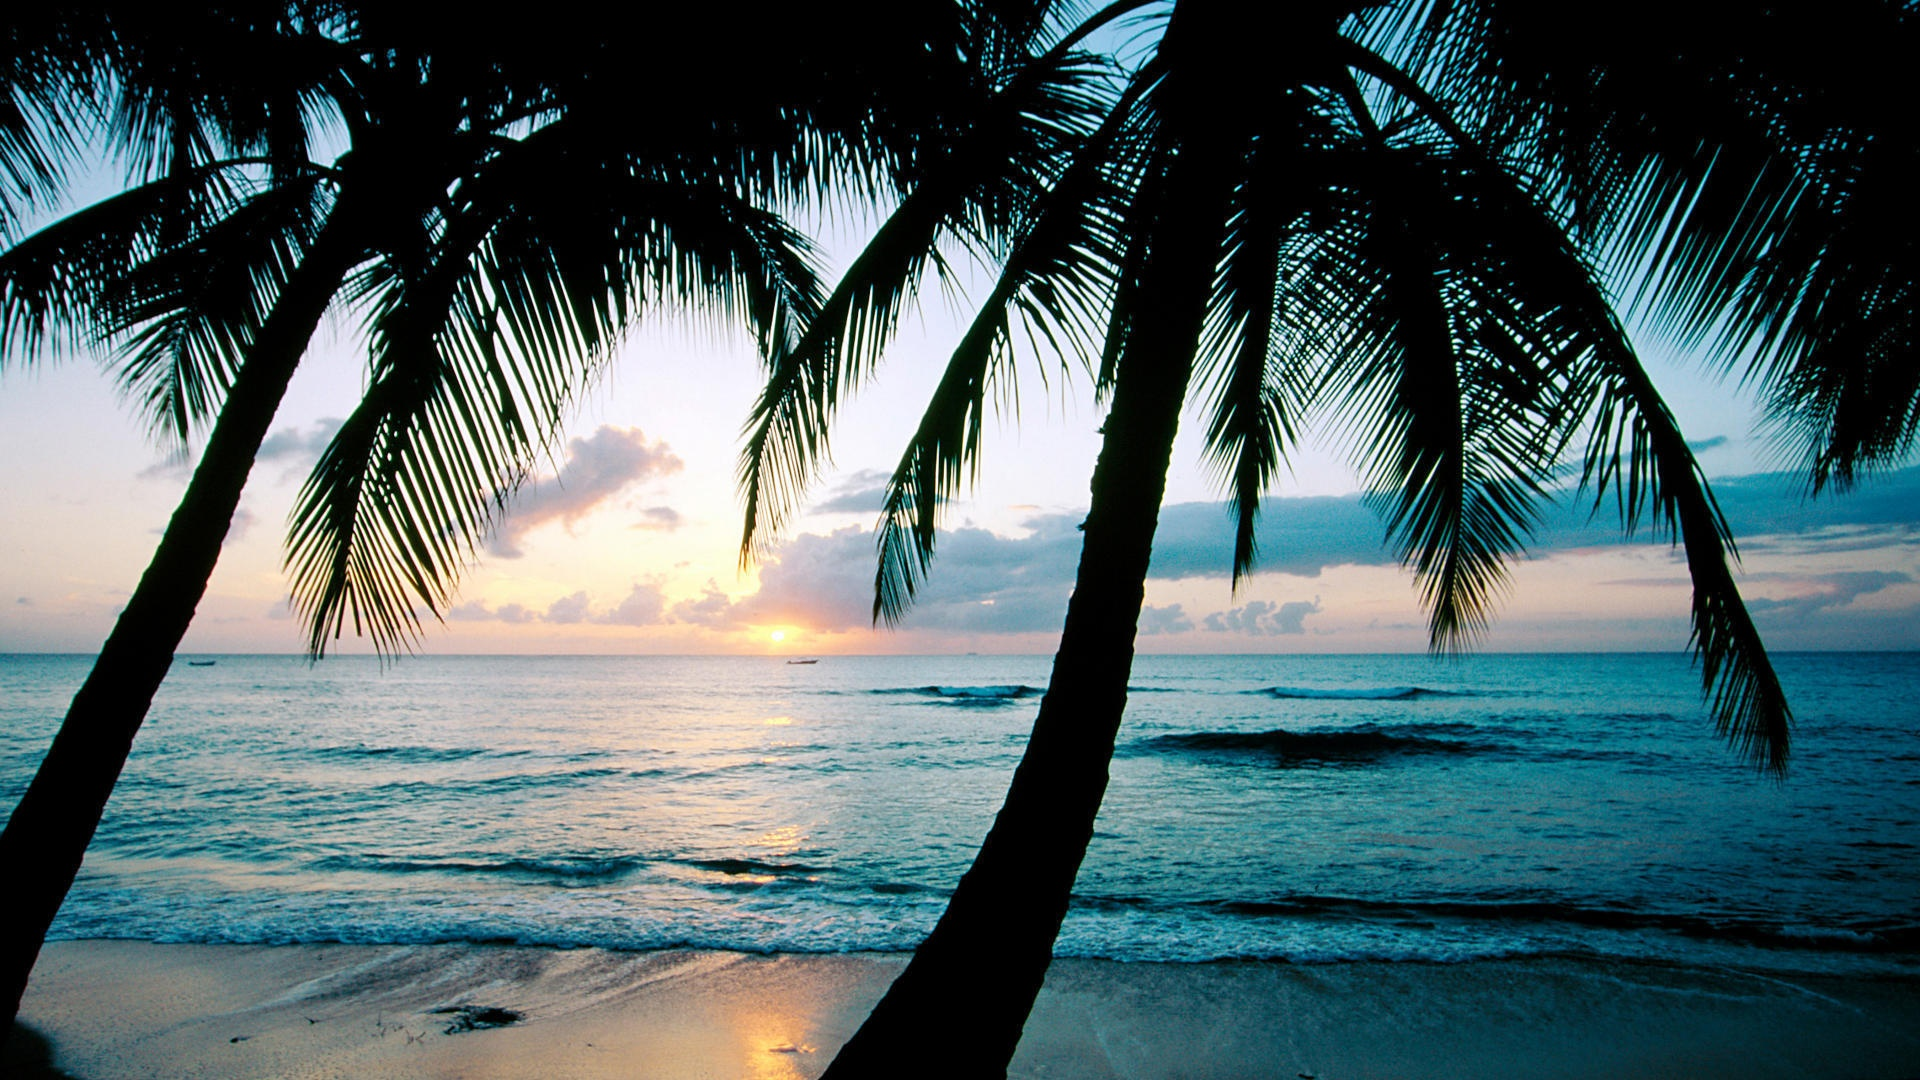 Ocean-Sunset-Palm-Trees